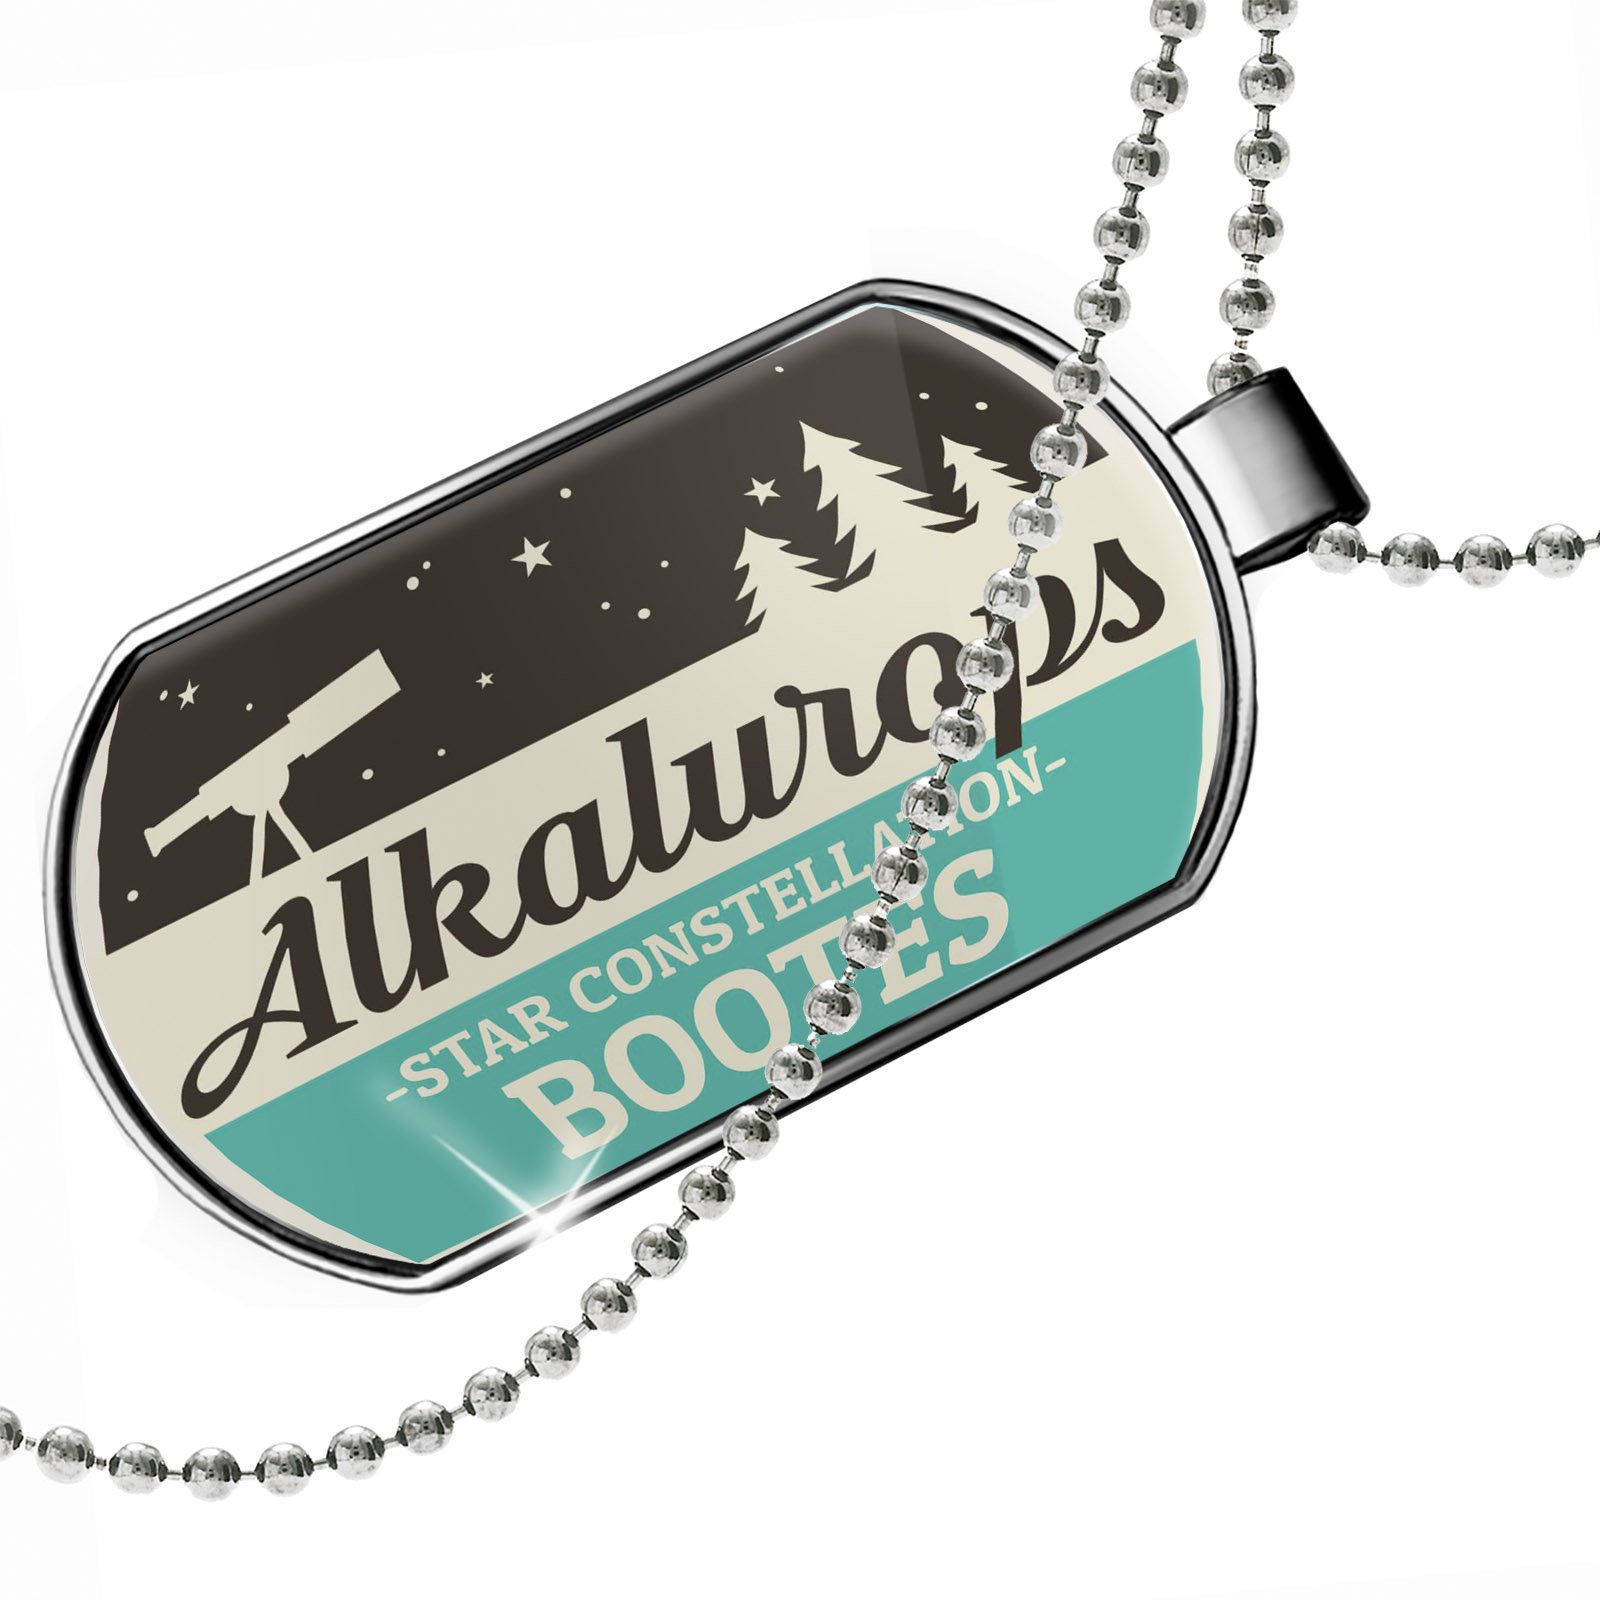 Dogtag Star Constellation Name Bootes - Alkalurops Dog tags necklace - Neonblond